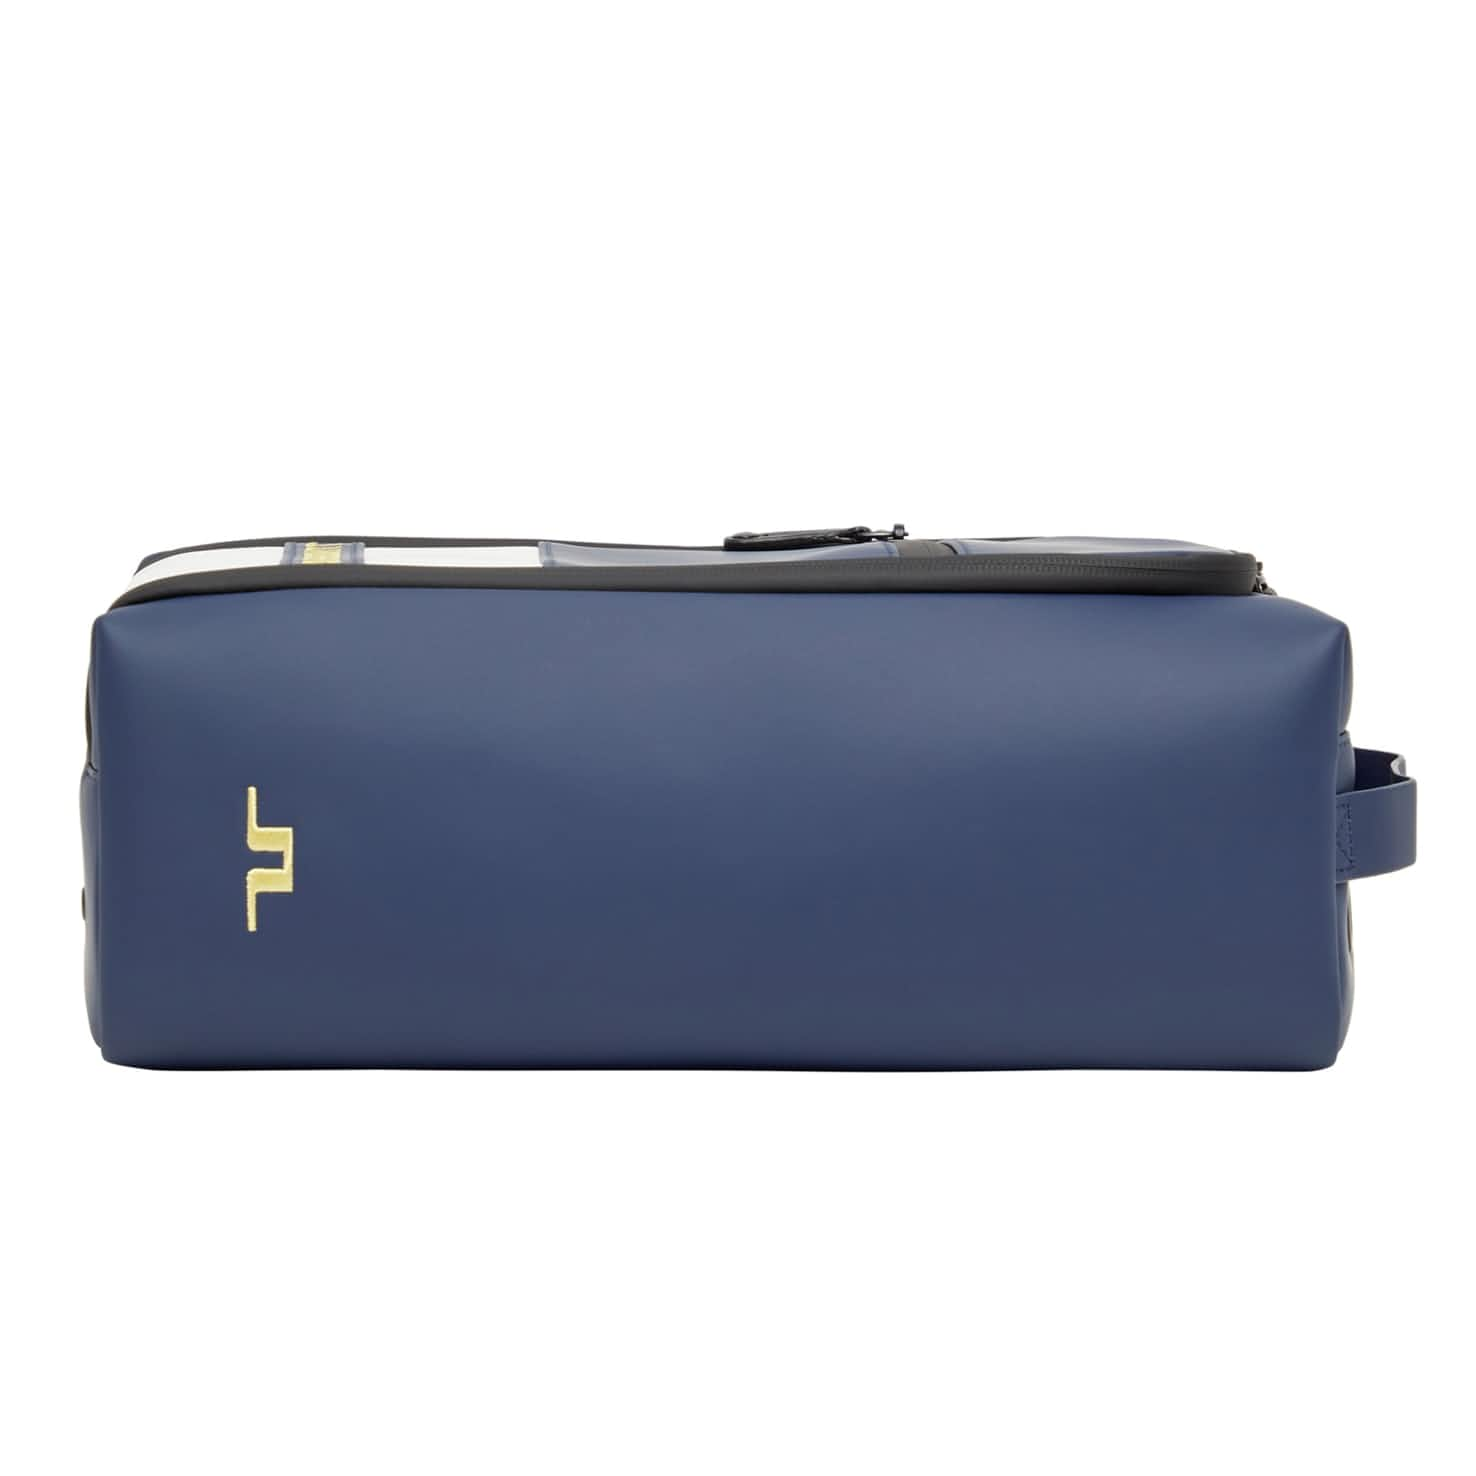 Footwear Bag Synthetic Leather JL Navy - SS20